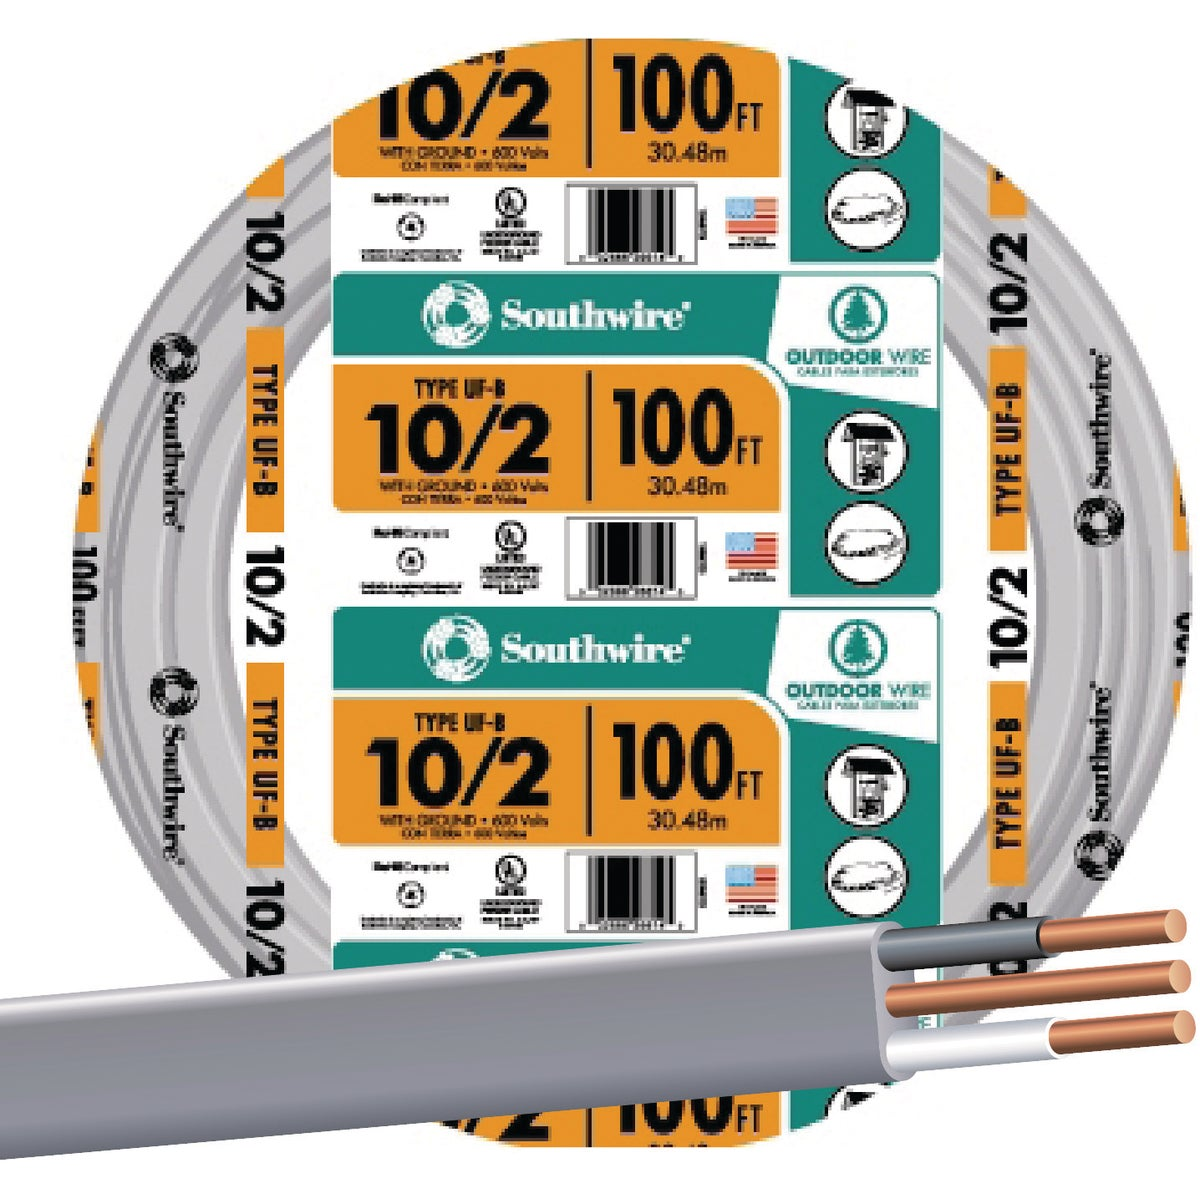 100' 10-2 UFW/G WIRE - 13056723 by Southwire Company